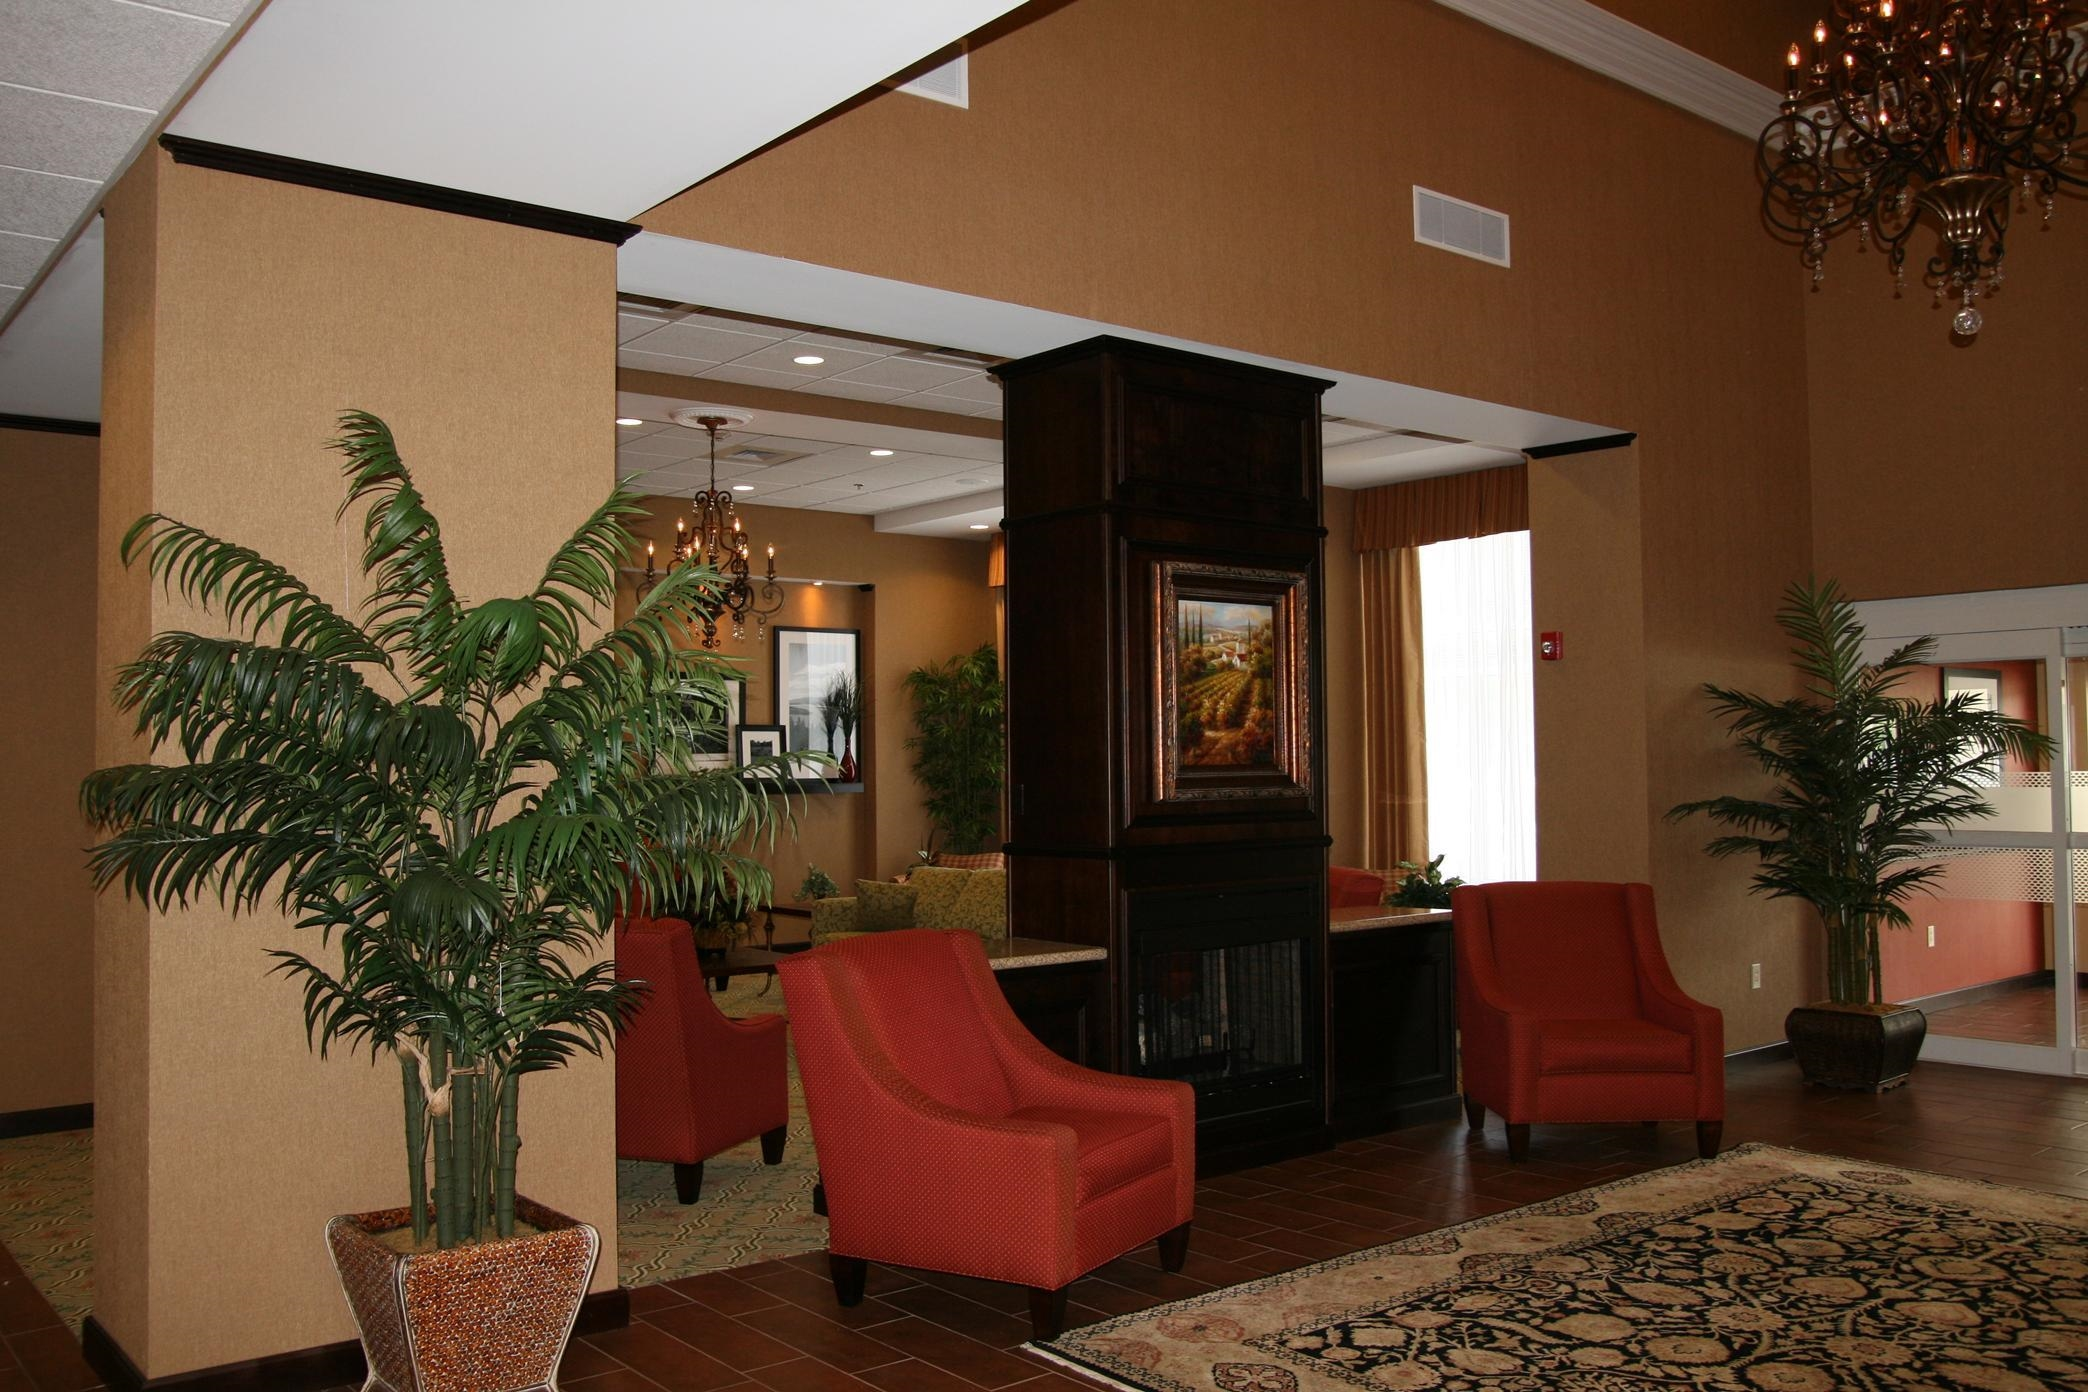 Hampton Inn & Suites Huntsville Hampton Cove image 0